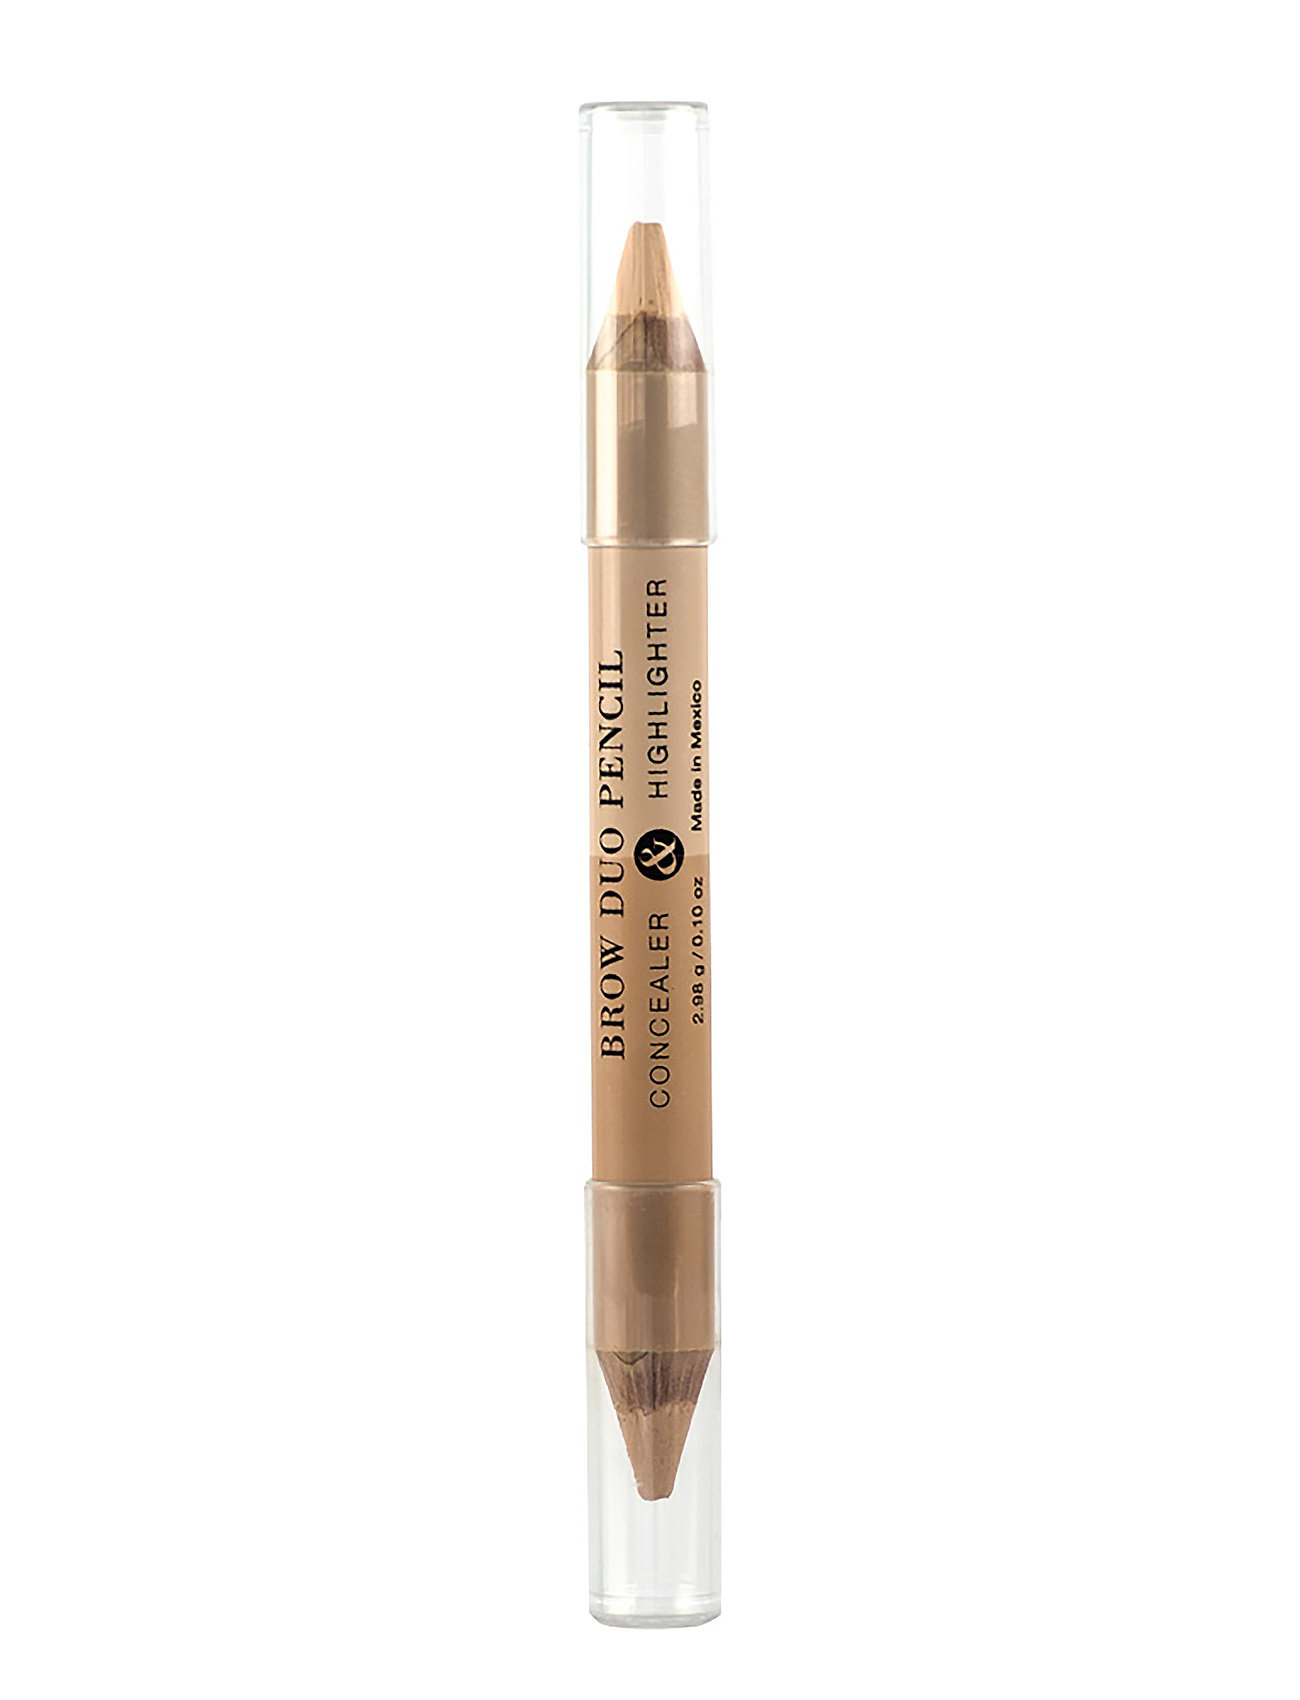 Brow duo pencil fra bdb billion dollar brows på boozt.com dk